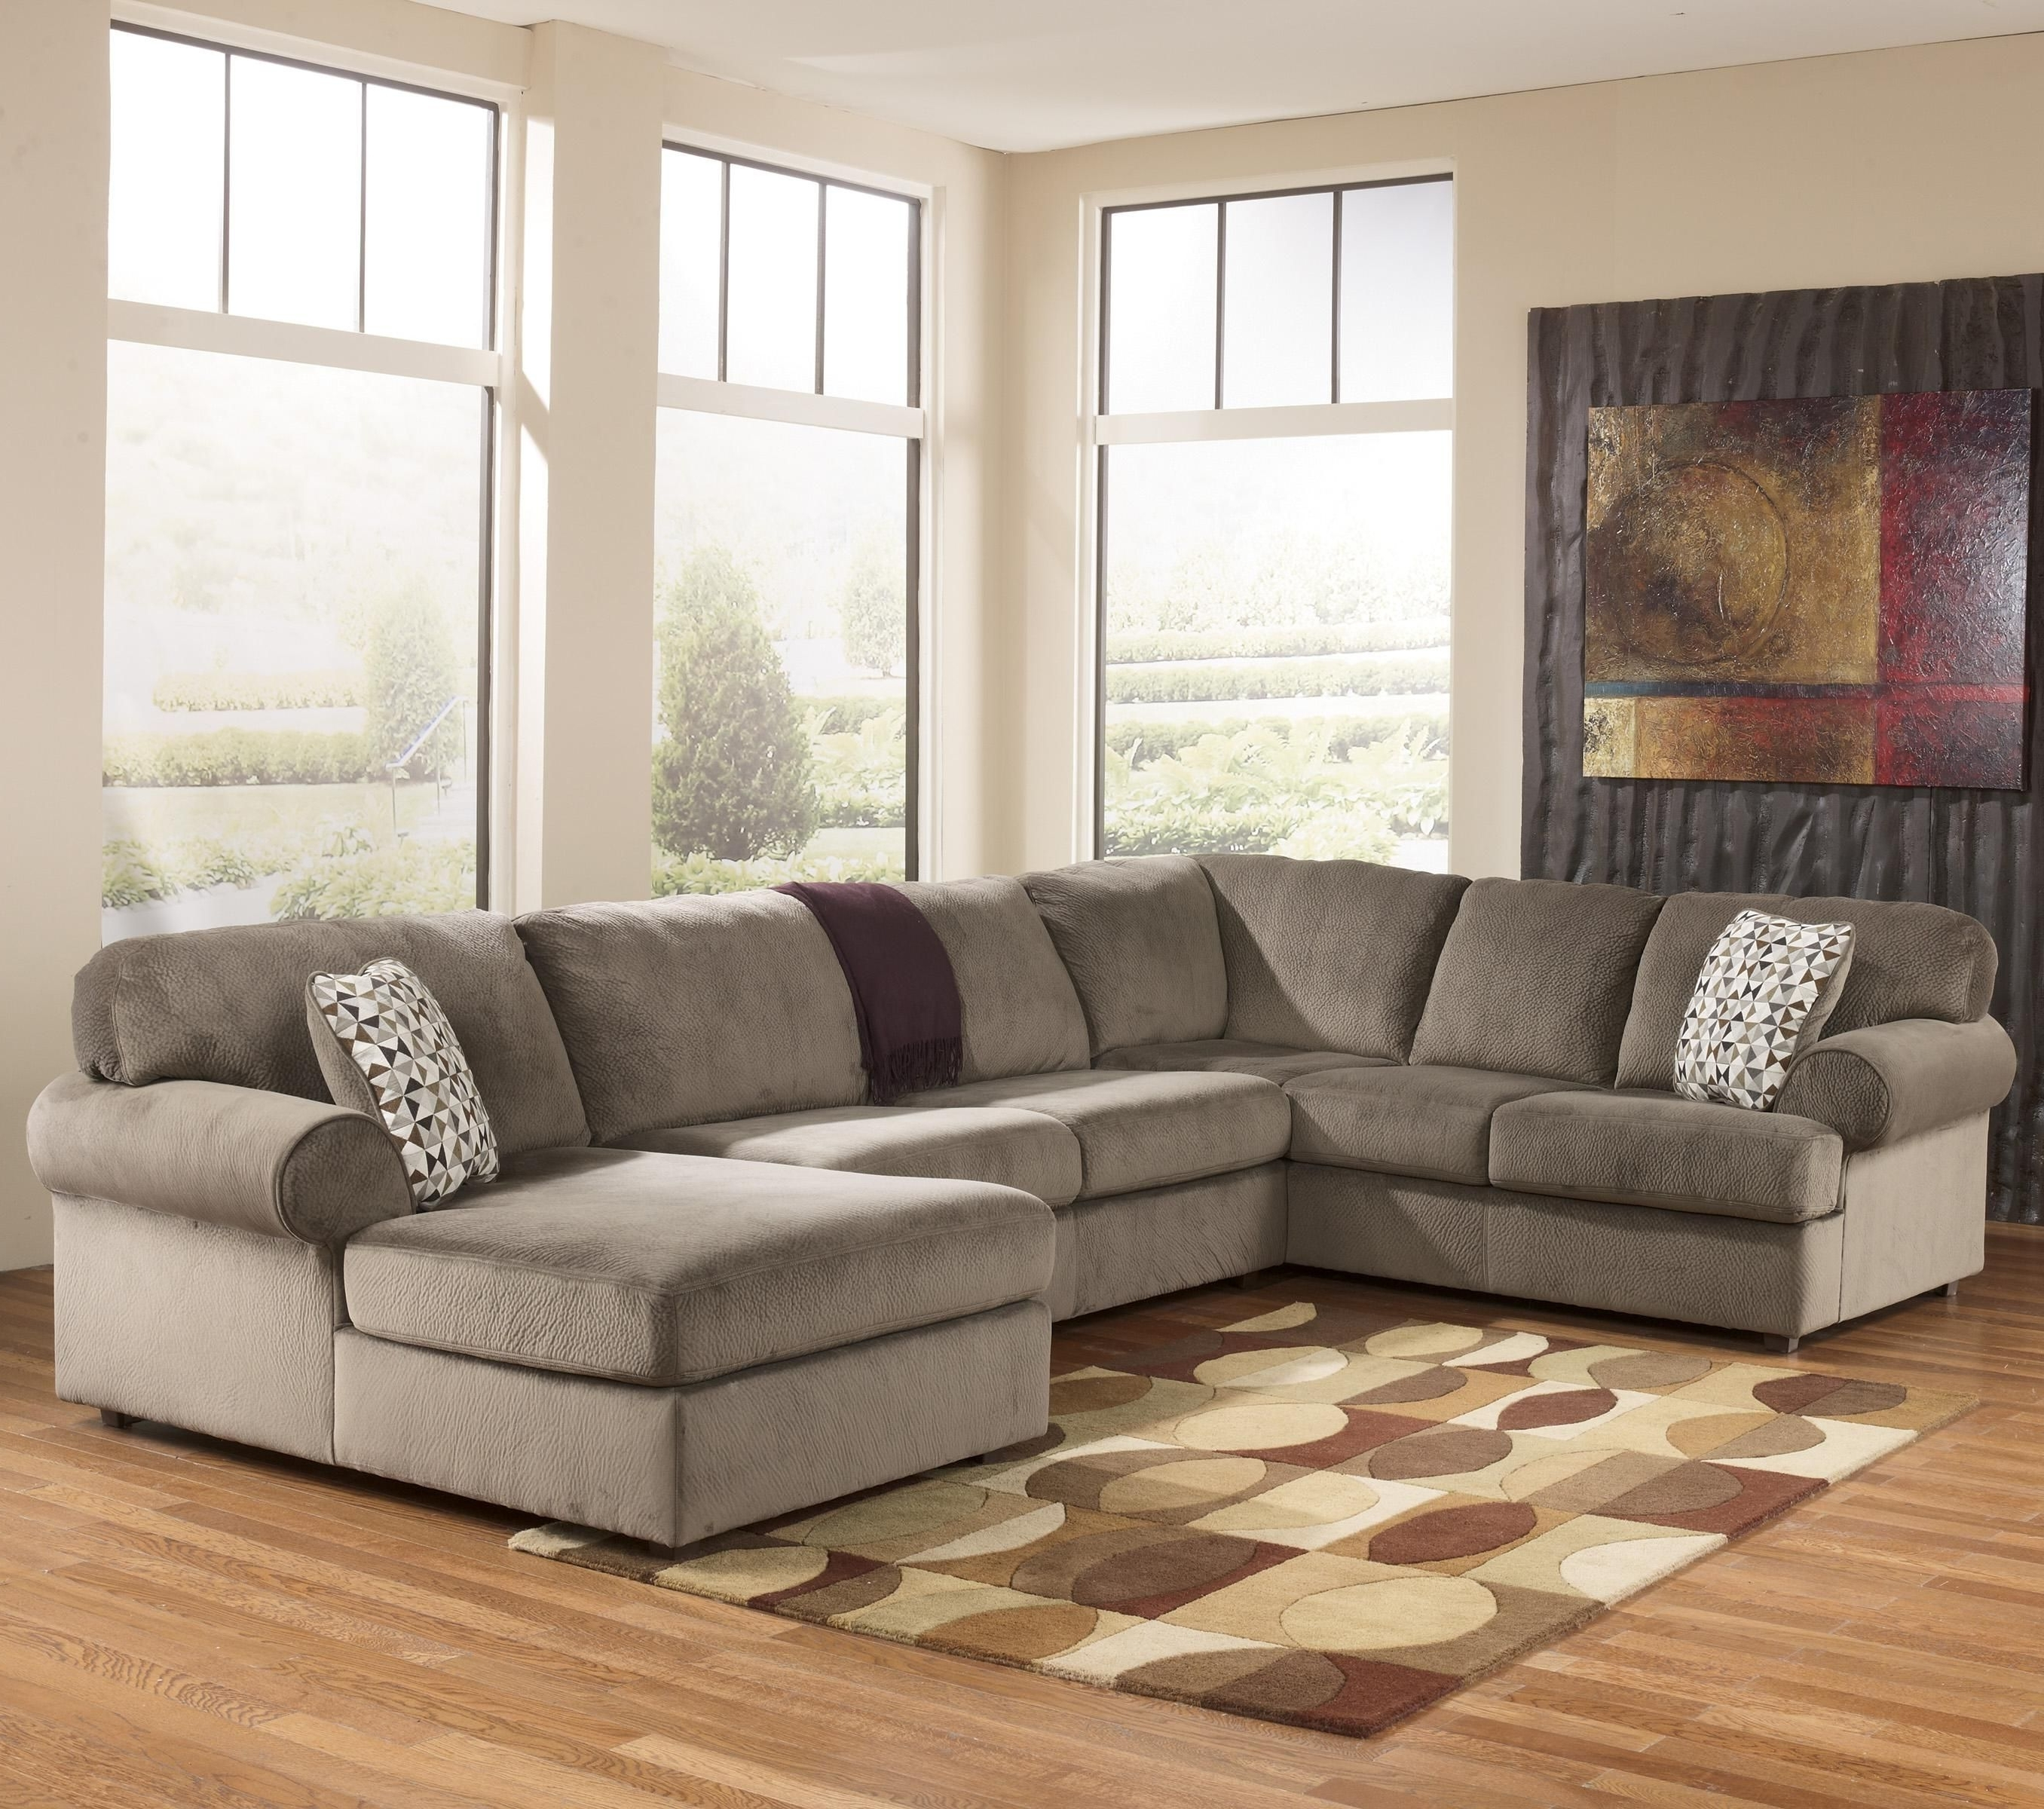 Best And Newest Pensacola Fl Sectional Sofas Intended For Jessa Place – Dune Casual Sectional Sofa With Right Chaise (View 4 of 20)